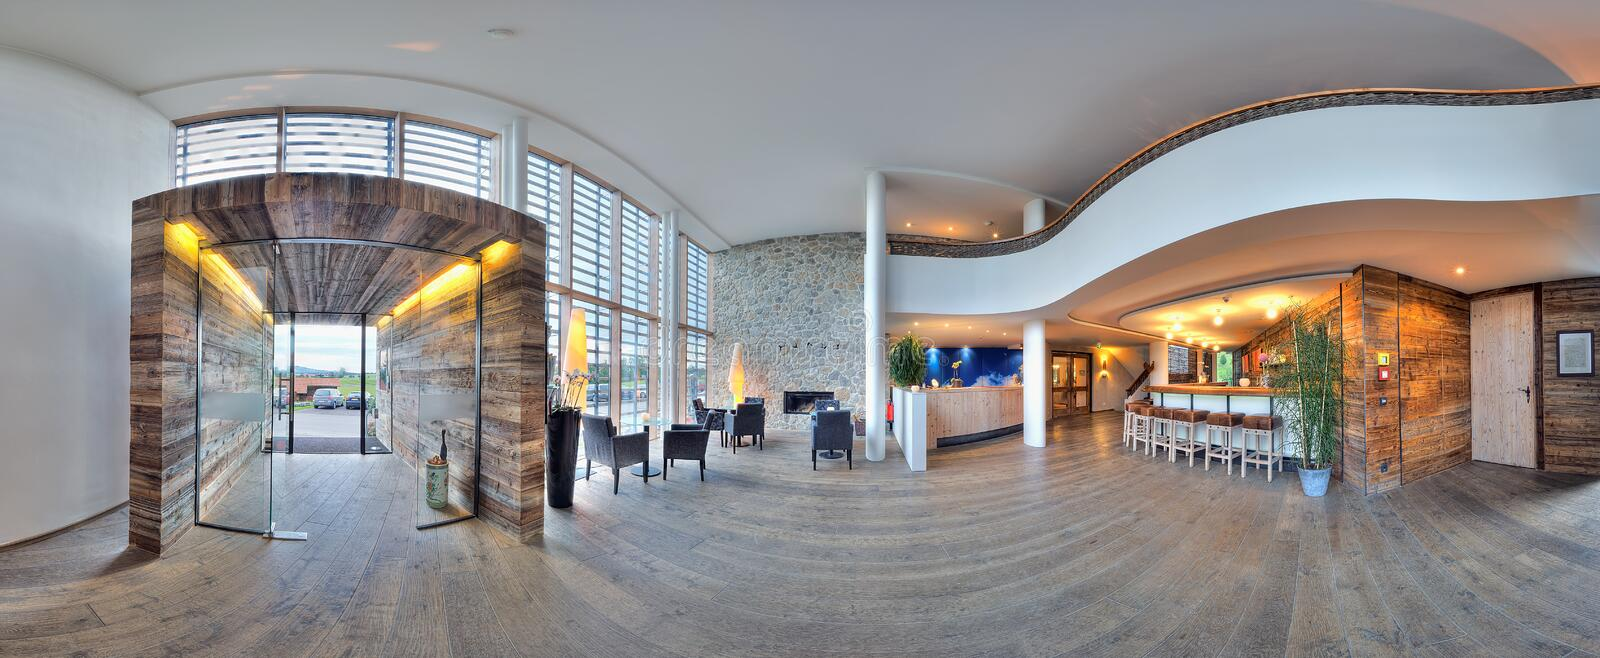 Download Hotel reception stock photo. Image of space, glass, decor - 22410078